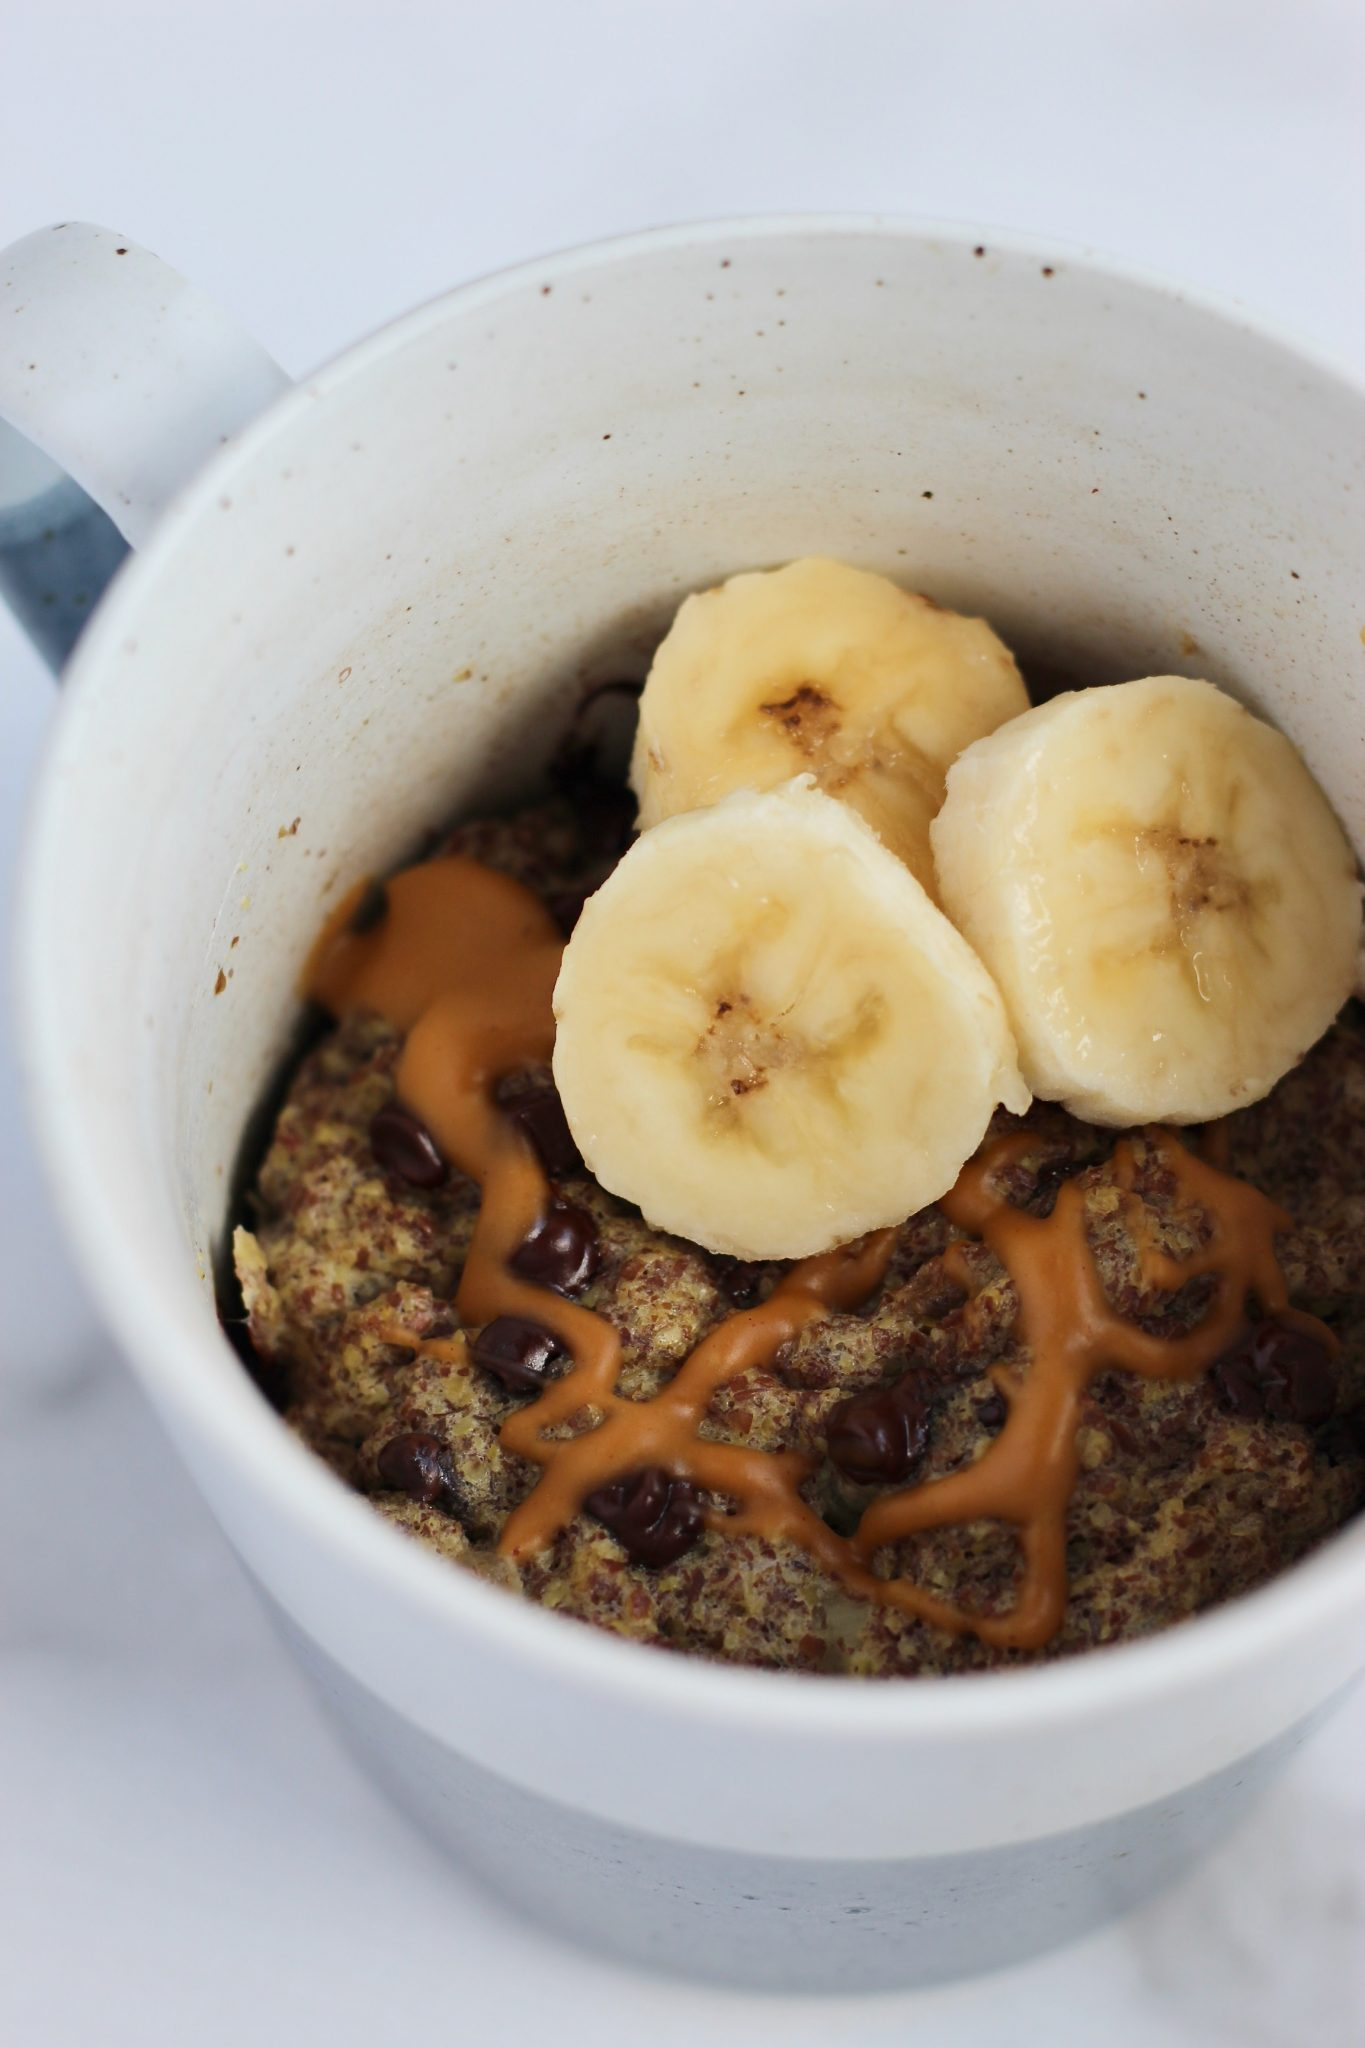 This flax mug muffin is the perfect satisfying breakfast or healthier dessert. Serve with sliced bananas and peanut butter on top for extra flavor! Naturally gluten-free and dairy-free. #6ingredients #mugrecipes #healthybreakfast #mealprep